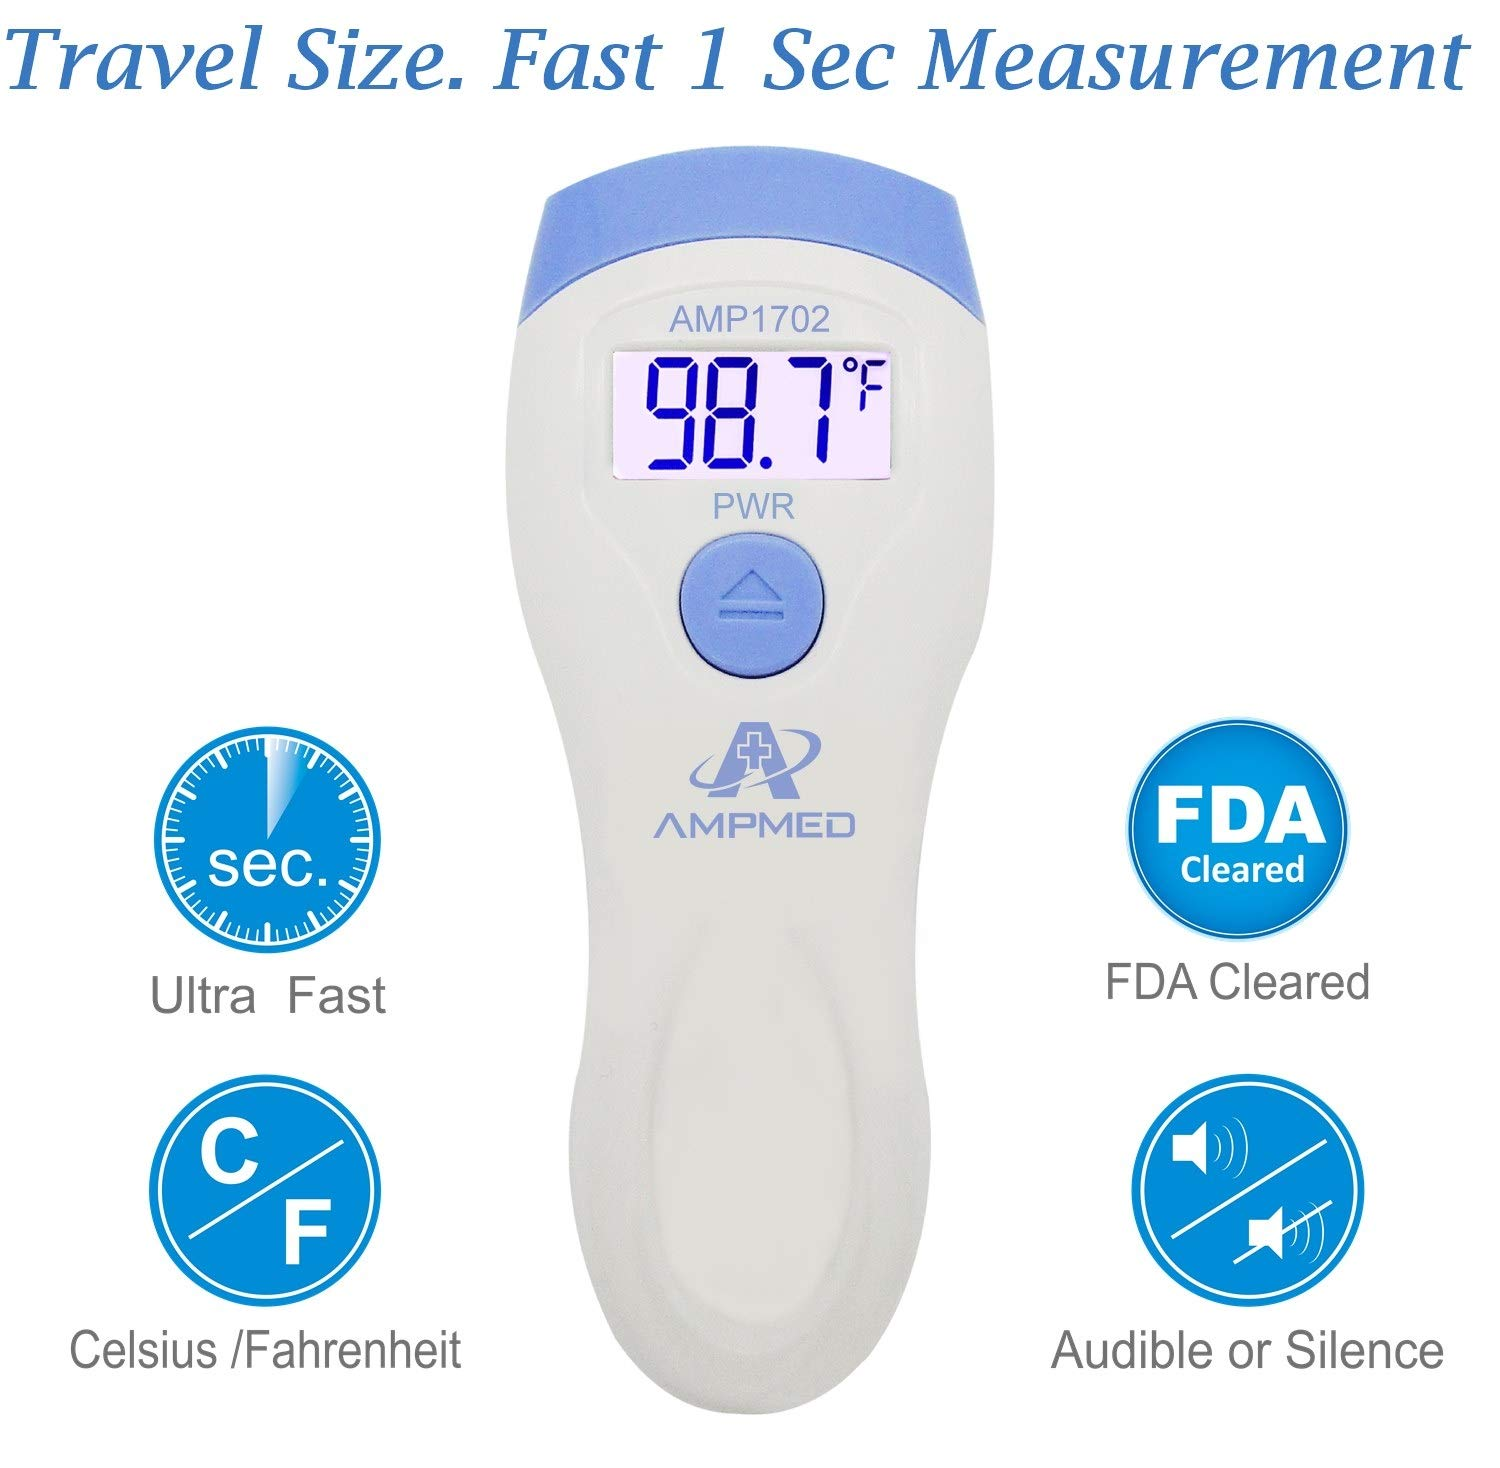 Amplim FDA Approved Medical Hospital Grade Non Contact Infrared Forehead Thermometer. Best Baby/Kid/Infant/Toddler/Child/Adult/Professional/Clinical Digital No Touch Travel Fever Thermometer. New 2018